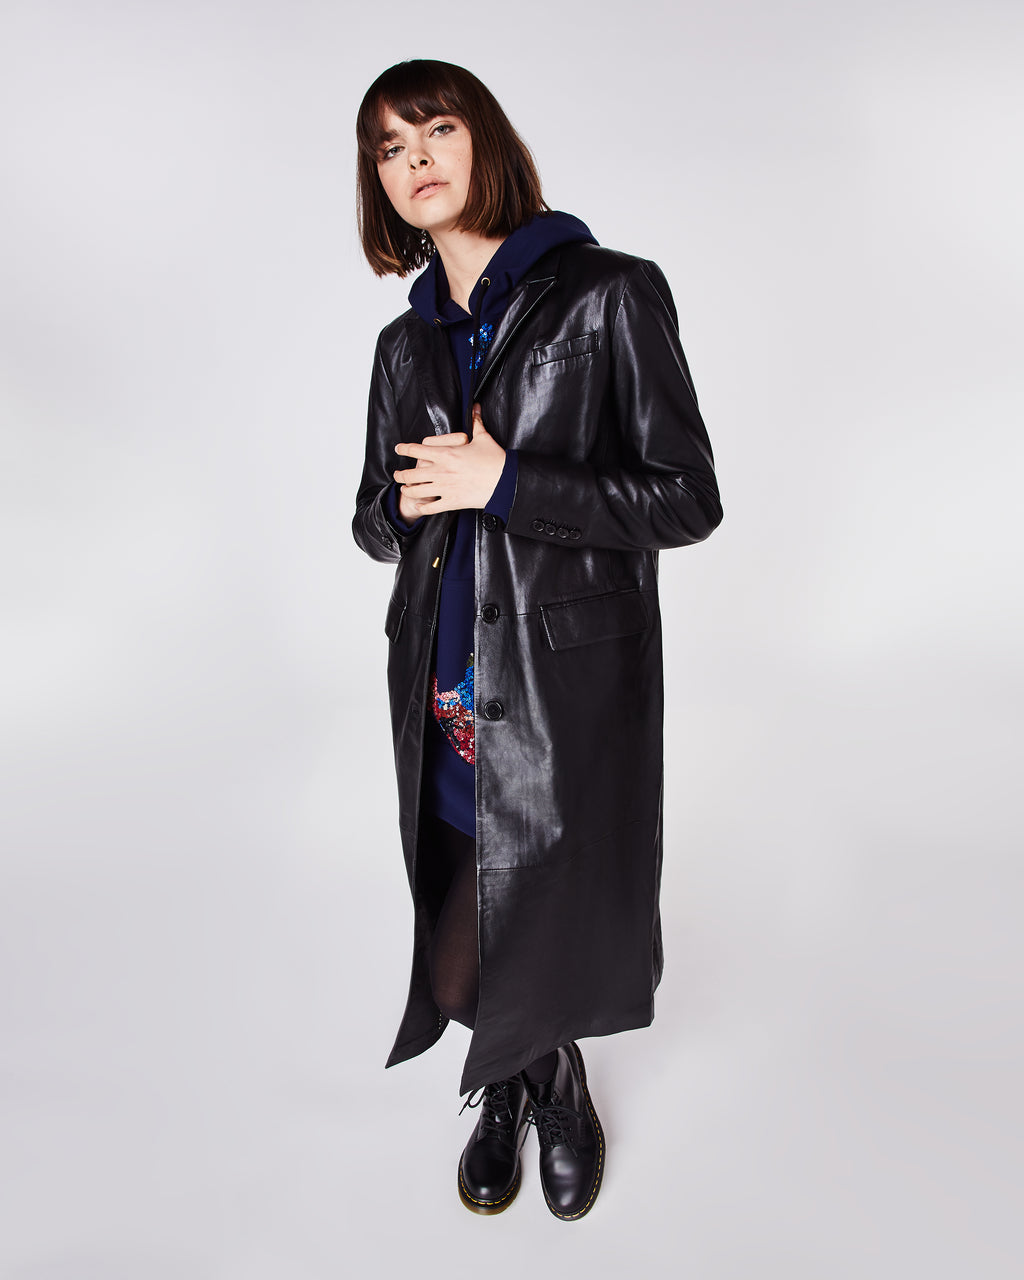 DQ10005 - LEATHER REEFER COAT - outerwear - leather - Subtle, yet chic, this leather trench coat is impeccably tailored. The triple breasted closure makes this coat perfect for cooler weather. Fully lined.